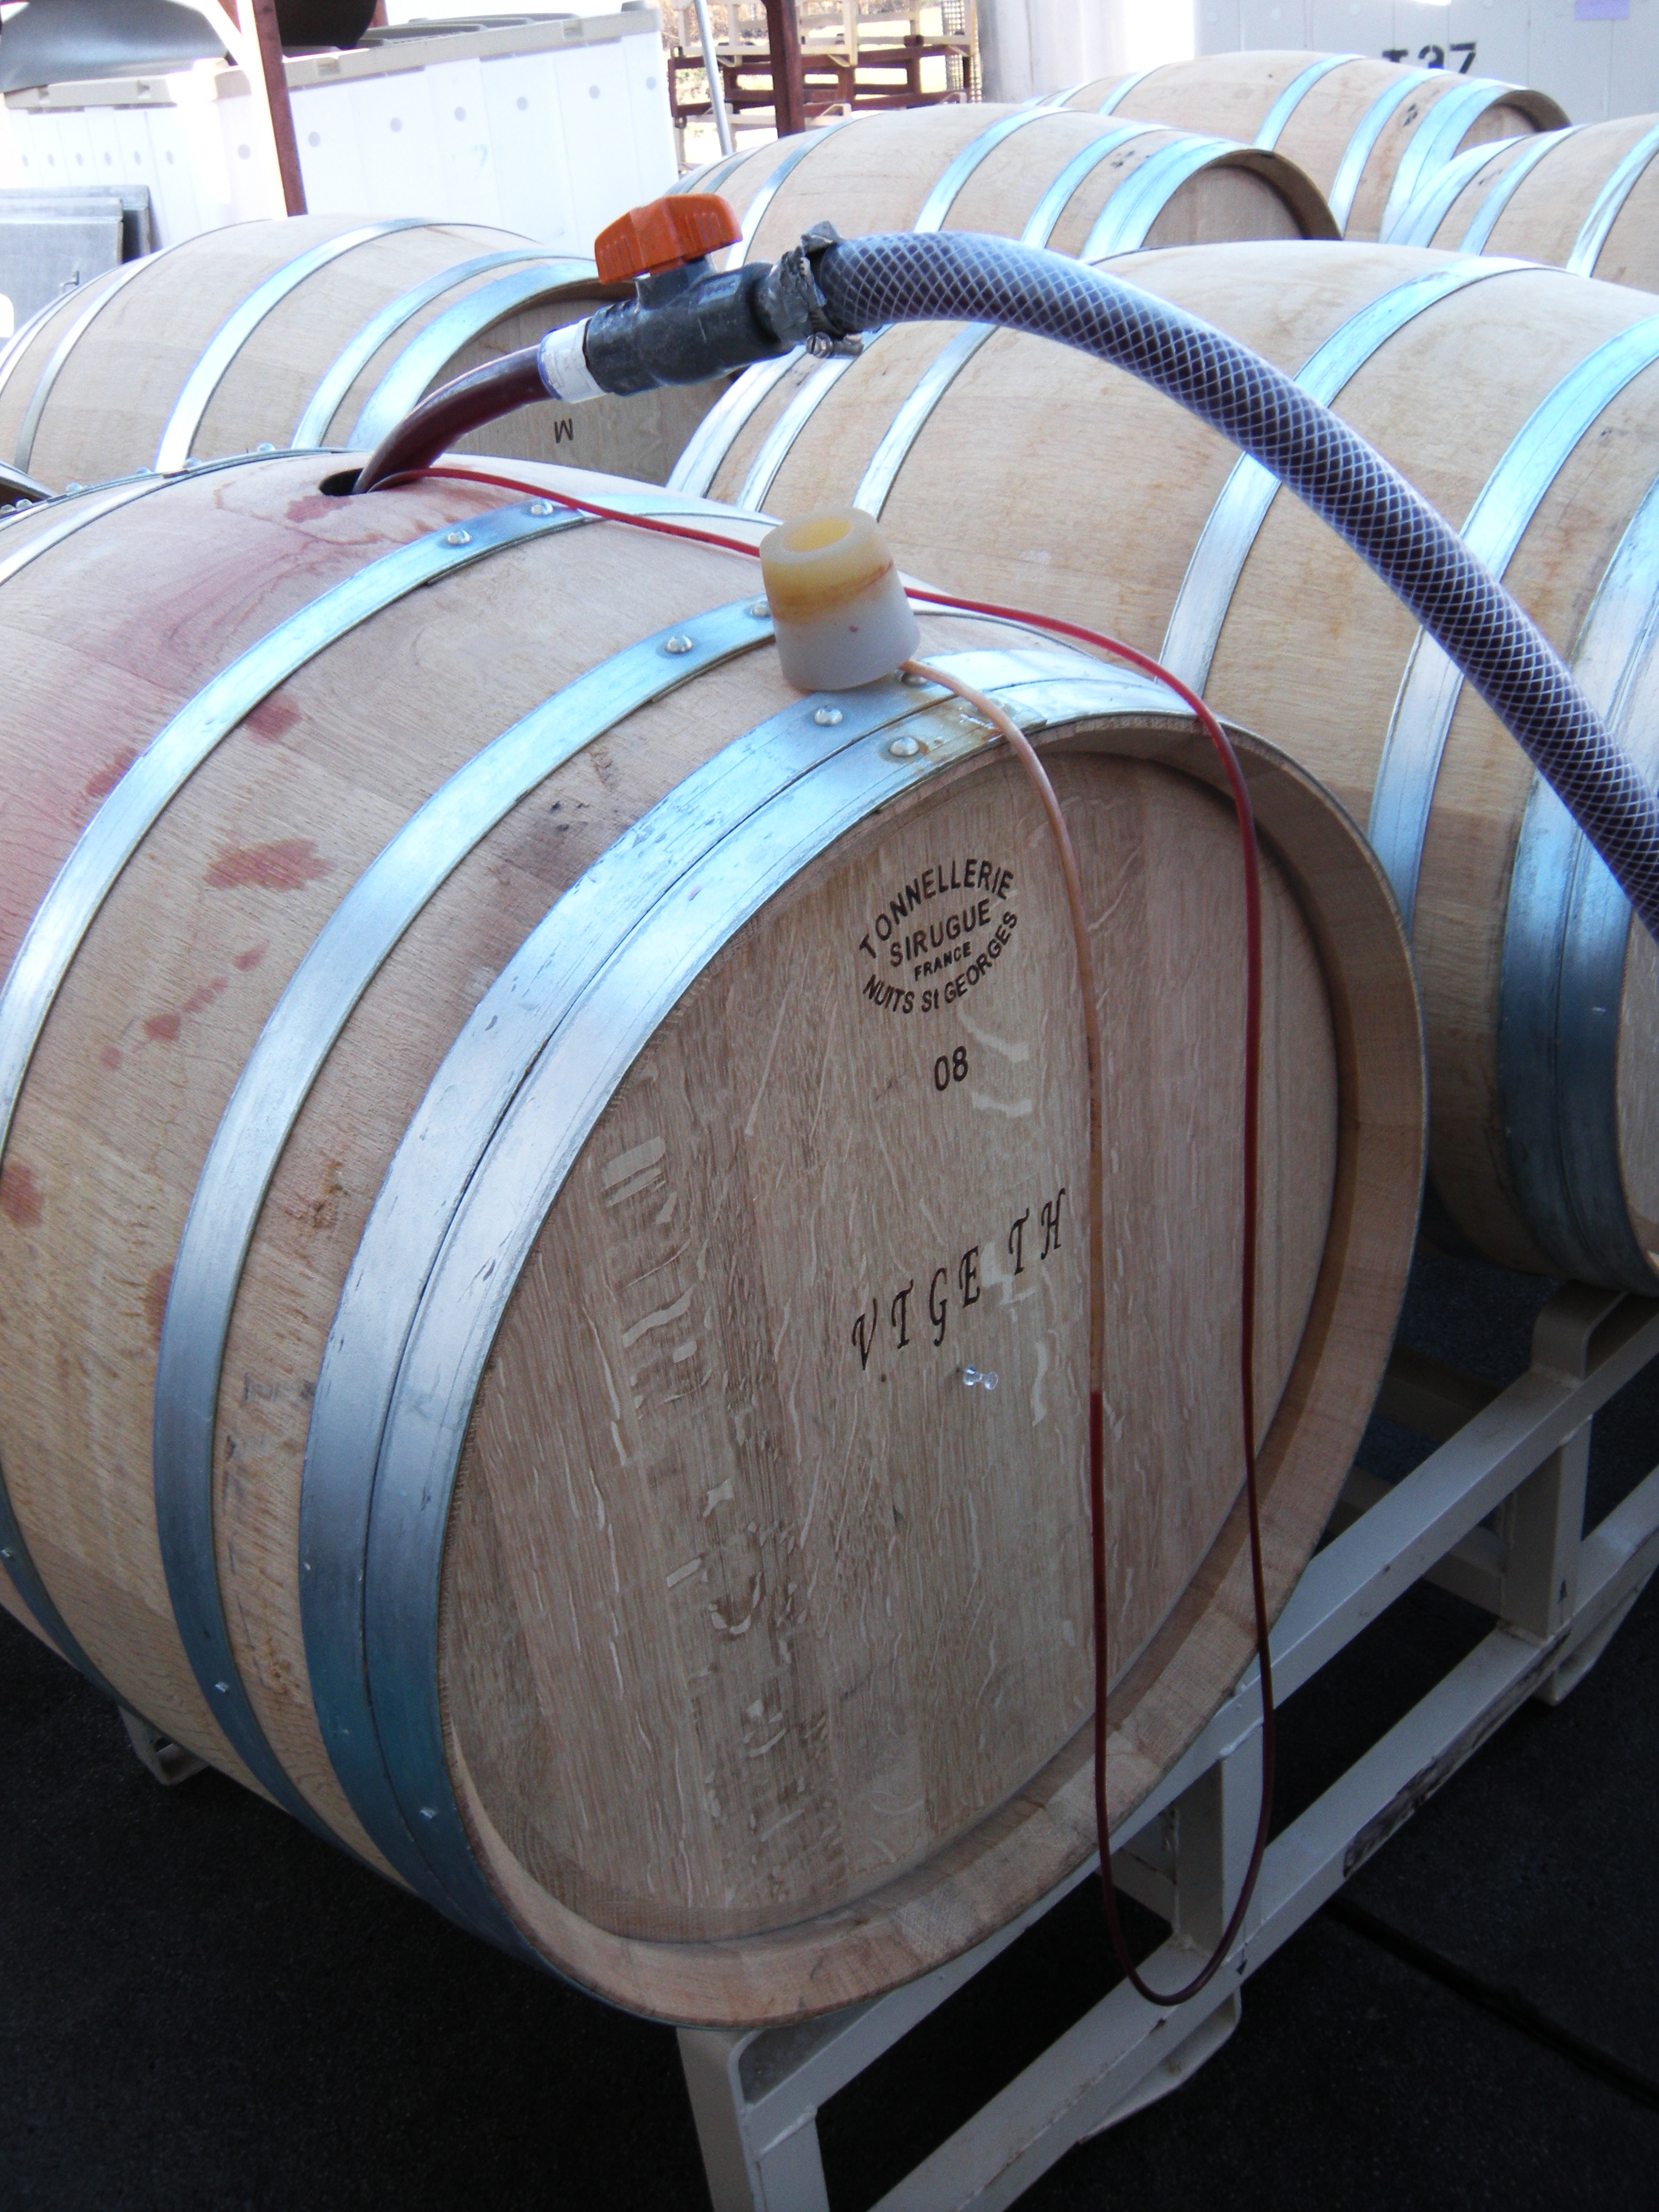 Barrel being filled with wine.